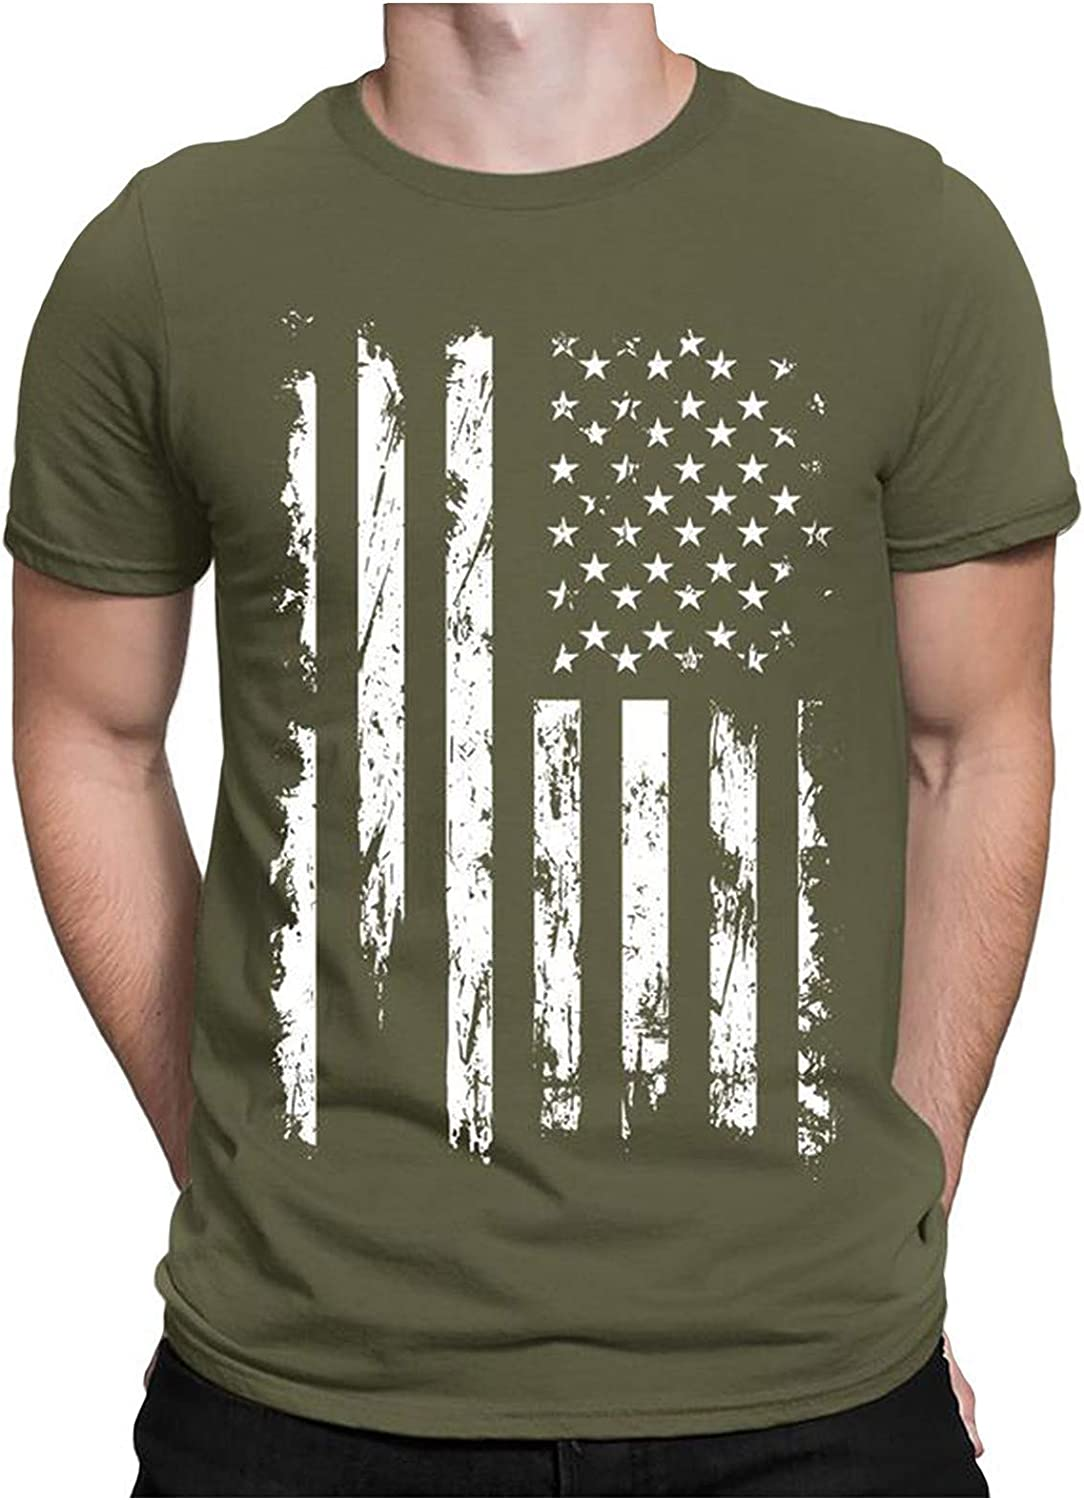 FUNEY USA American Flag Patriotic Men's T Shirt 3D Digital Printed Design Pattern T-Shirts Top Tees 4th of July Party Tees